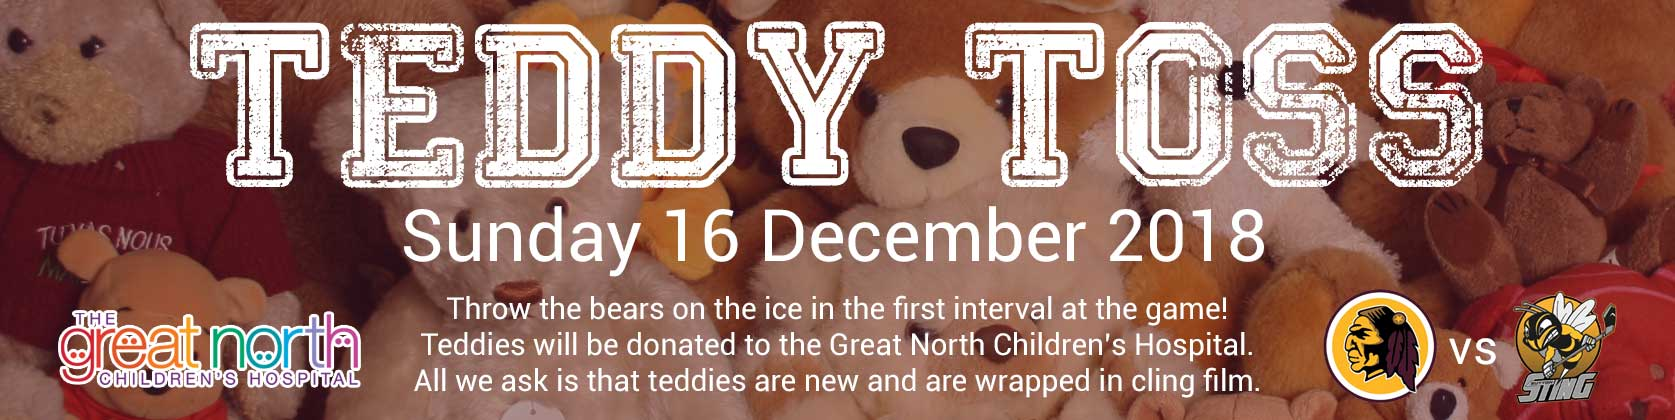 Whitley Warriors vs Sutton Sting @ Whitley Bay Ice Rink, Sunday 16 December, face off 5pm - Teddy Toss game!